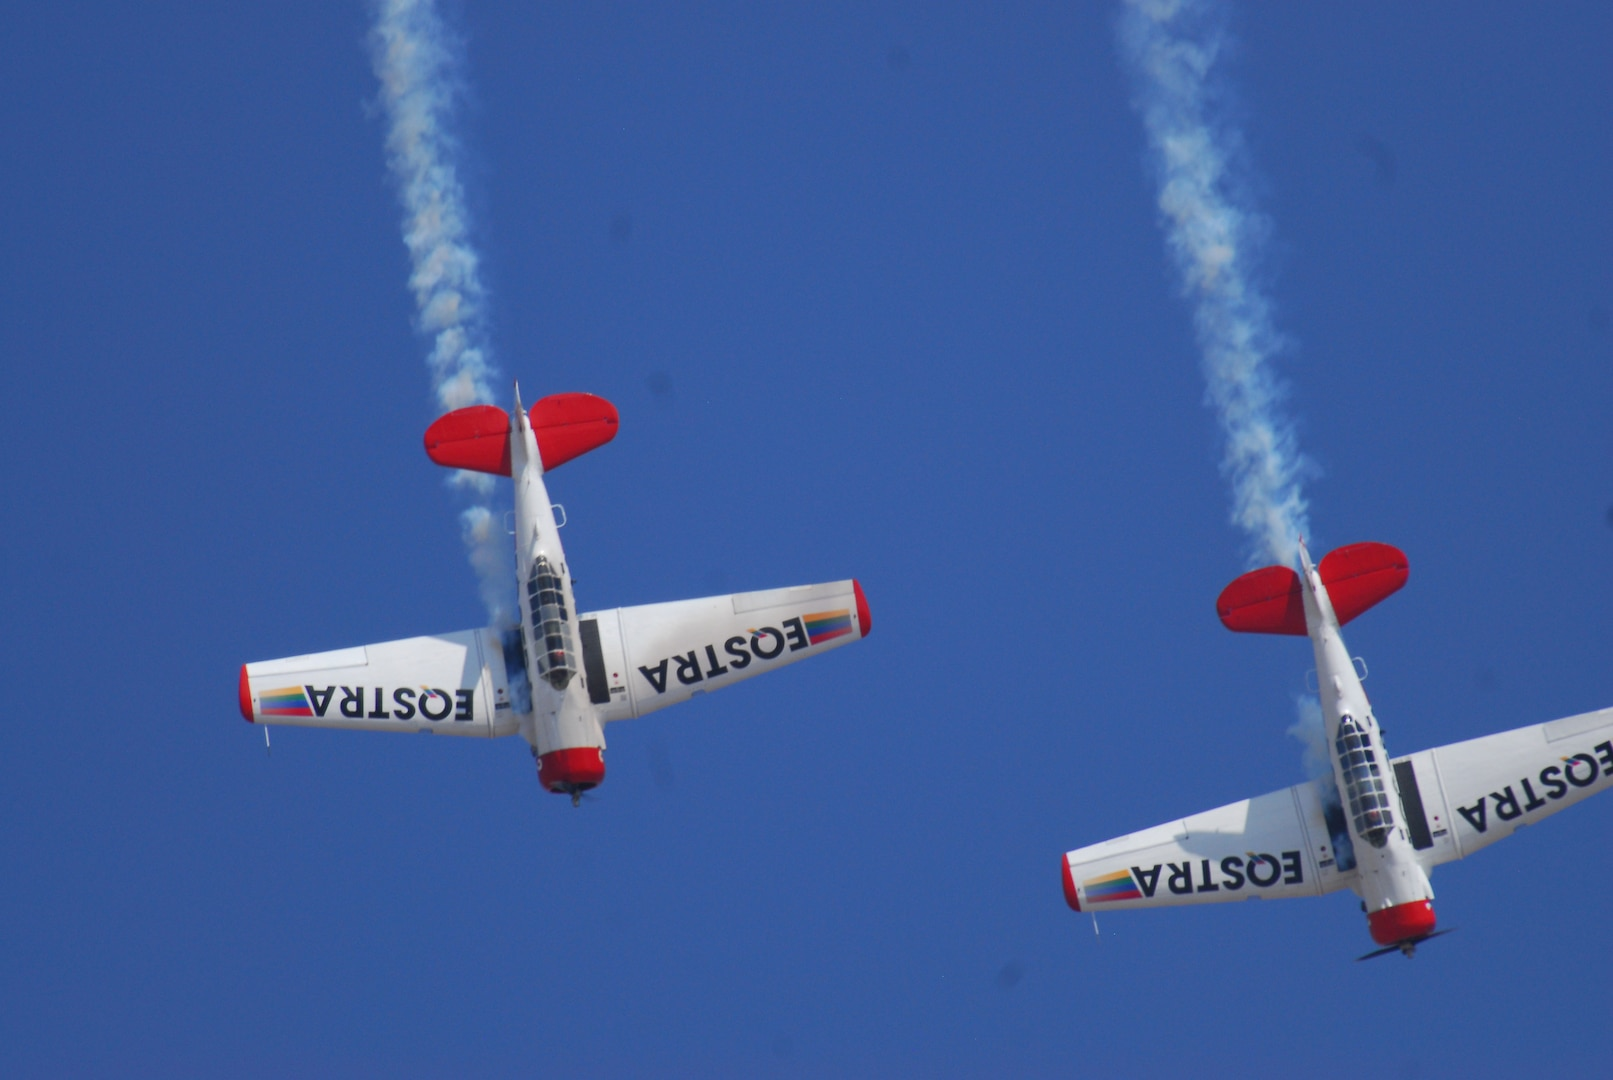 Aircraft of the Flying Lions Aerobatics Team perform in their North American AT-6 Harvard Trainers during the African Aerospace & Defense Exposition outside Pretoria, South Africa, Sept. 17, 2014. The New York Army and Air National Guard sent 15 Airmen and Soldiers, a C-17 Globemaster III transport and an RQ-7 Shadow unmanned aerial vehicle to participate in the show. They were part of a U.S. contingent of 100 service members.